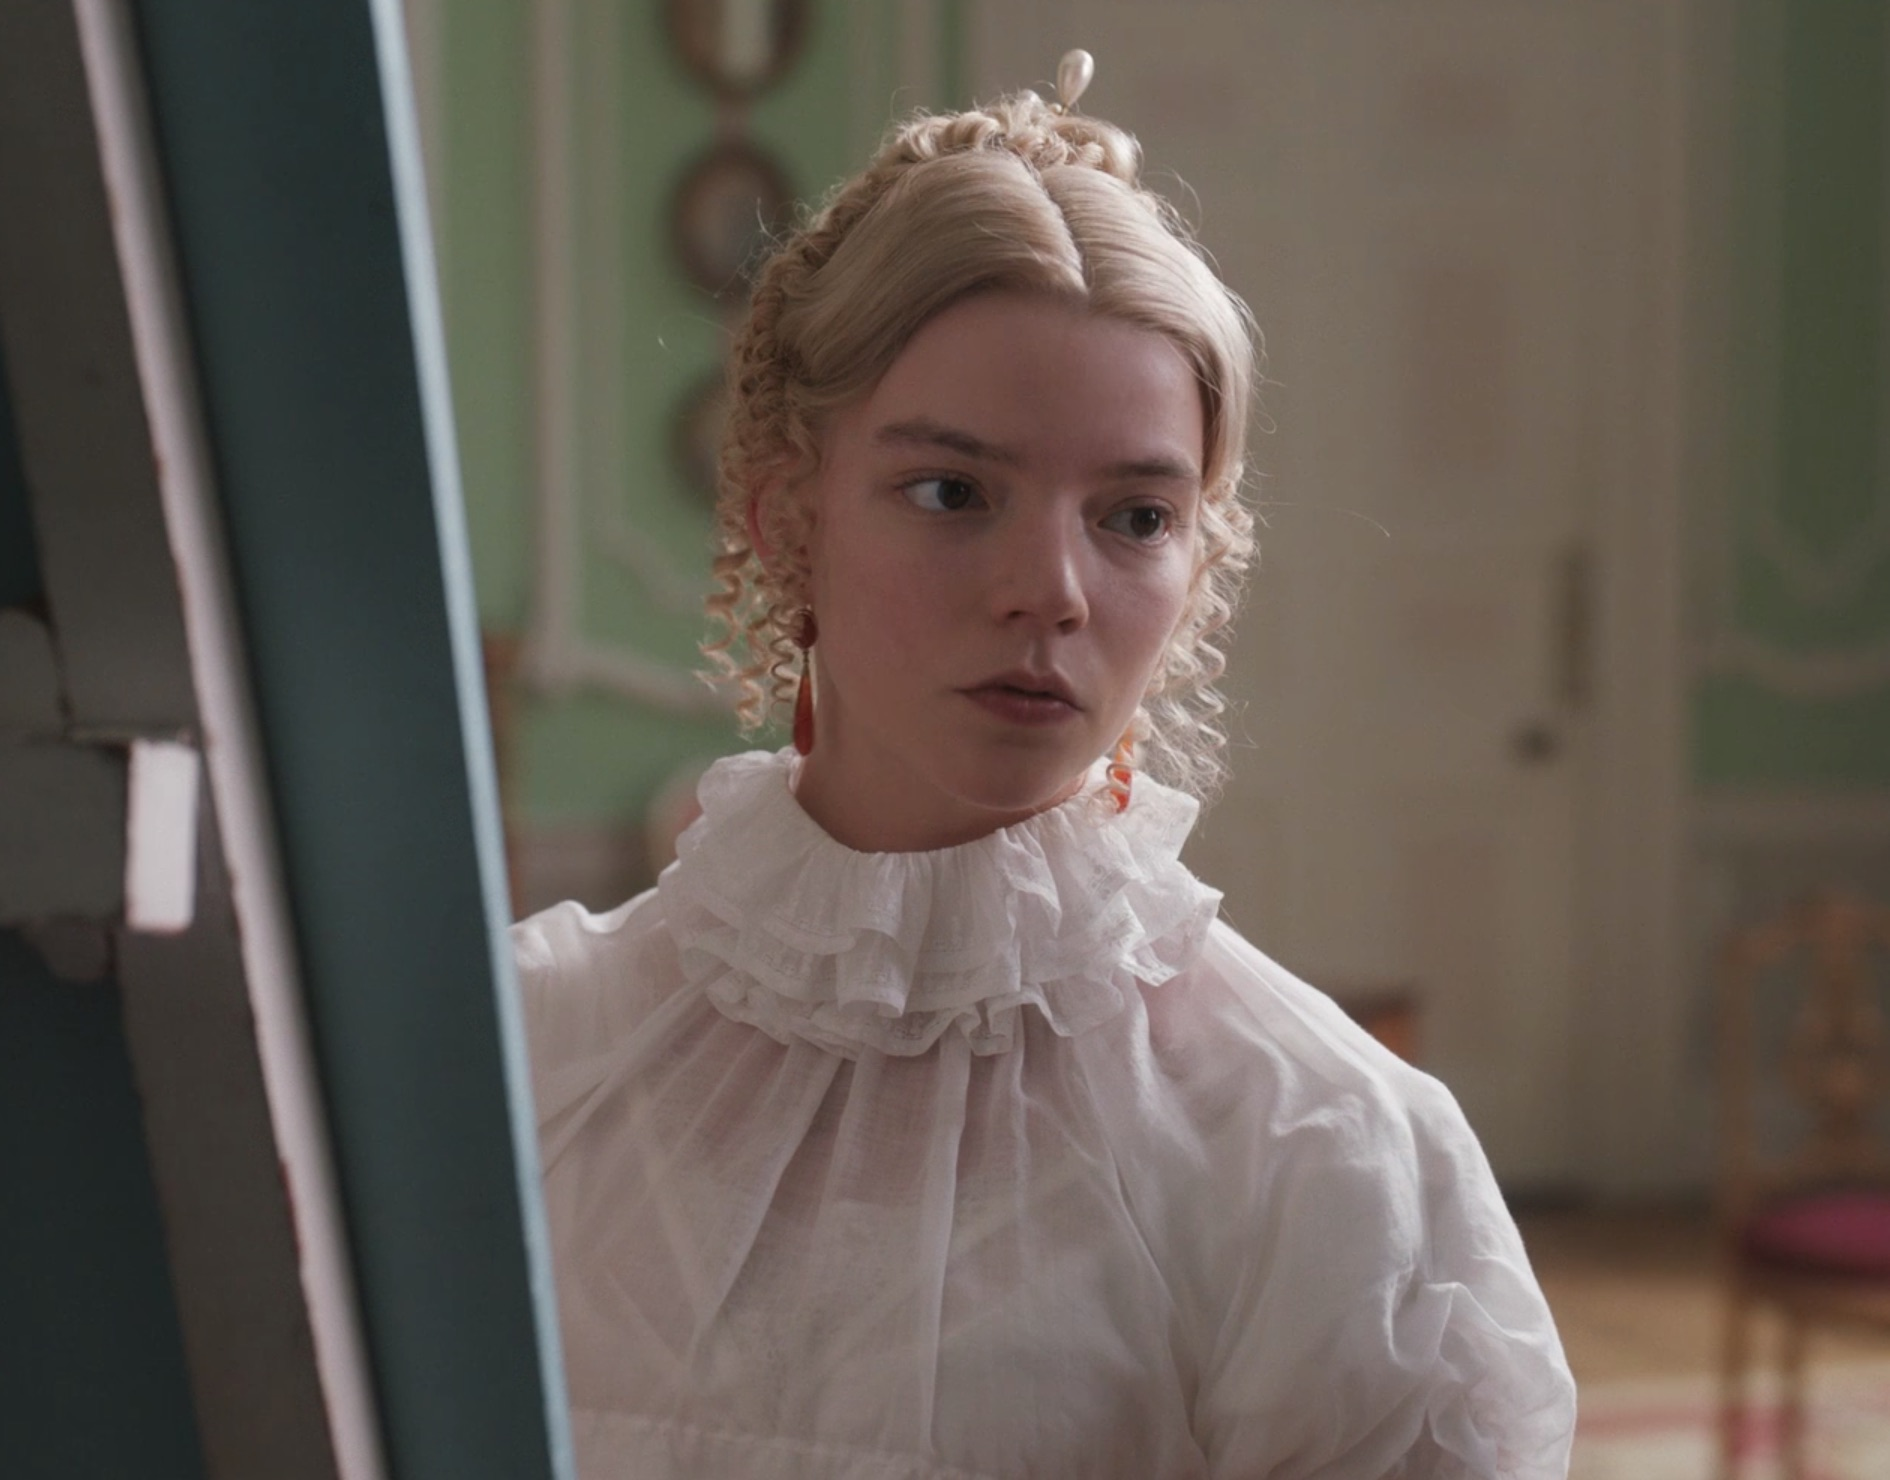 Emma (Anya Taylor-Joy) wearing pendant earrings and a pearl hair pin while she paints a portrait. Photo Focus Features